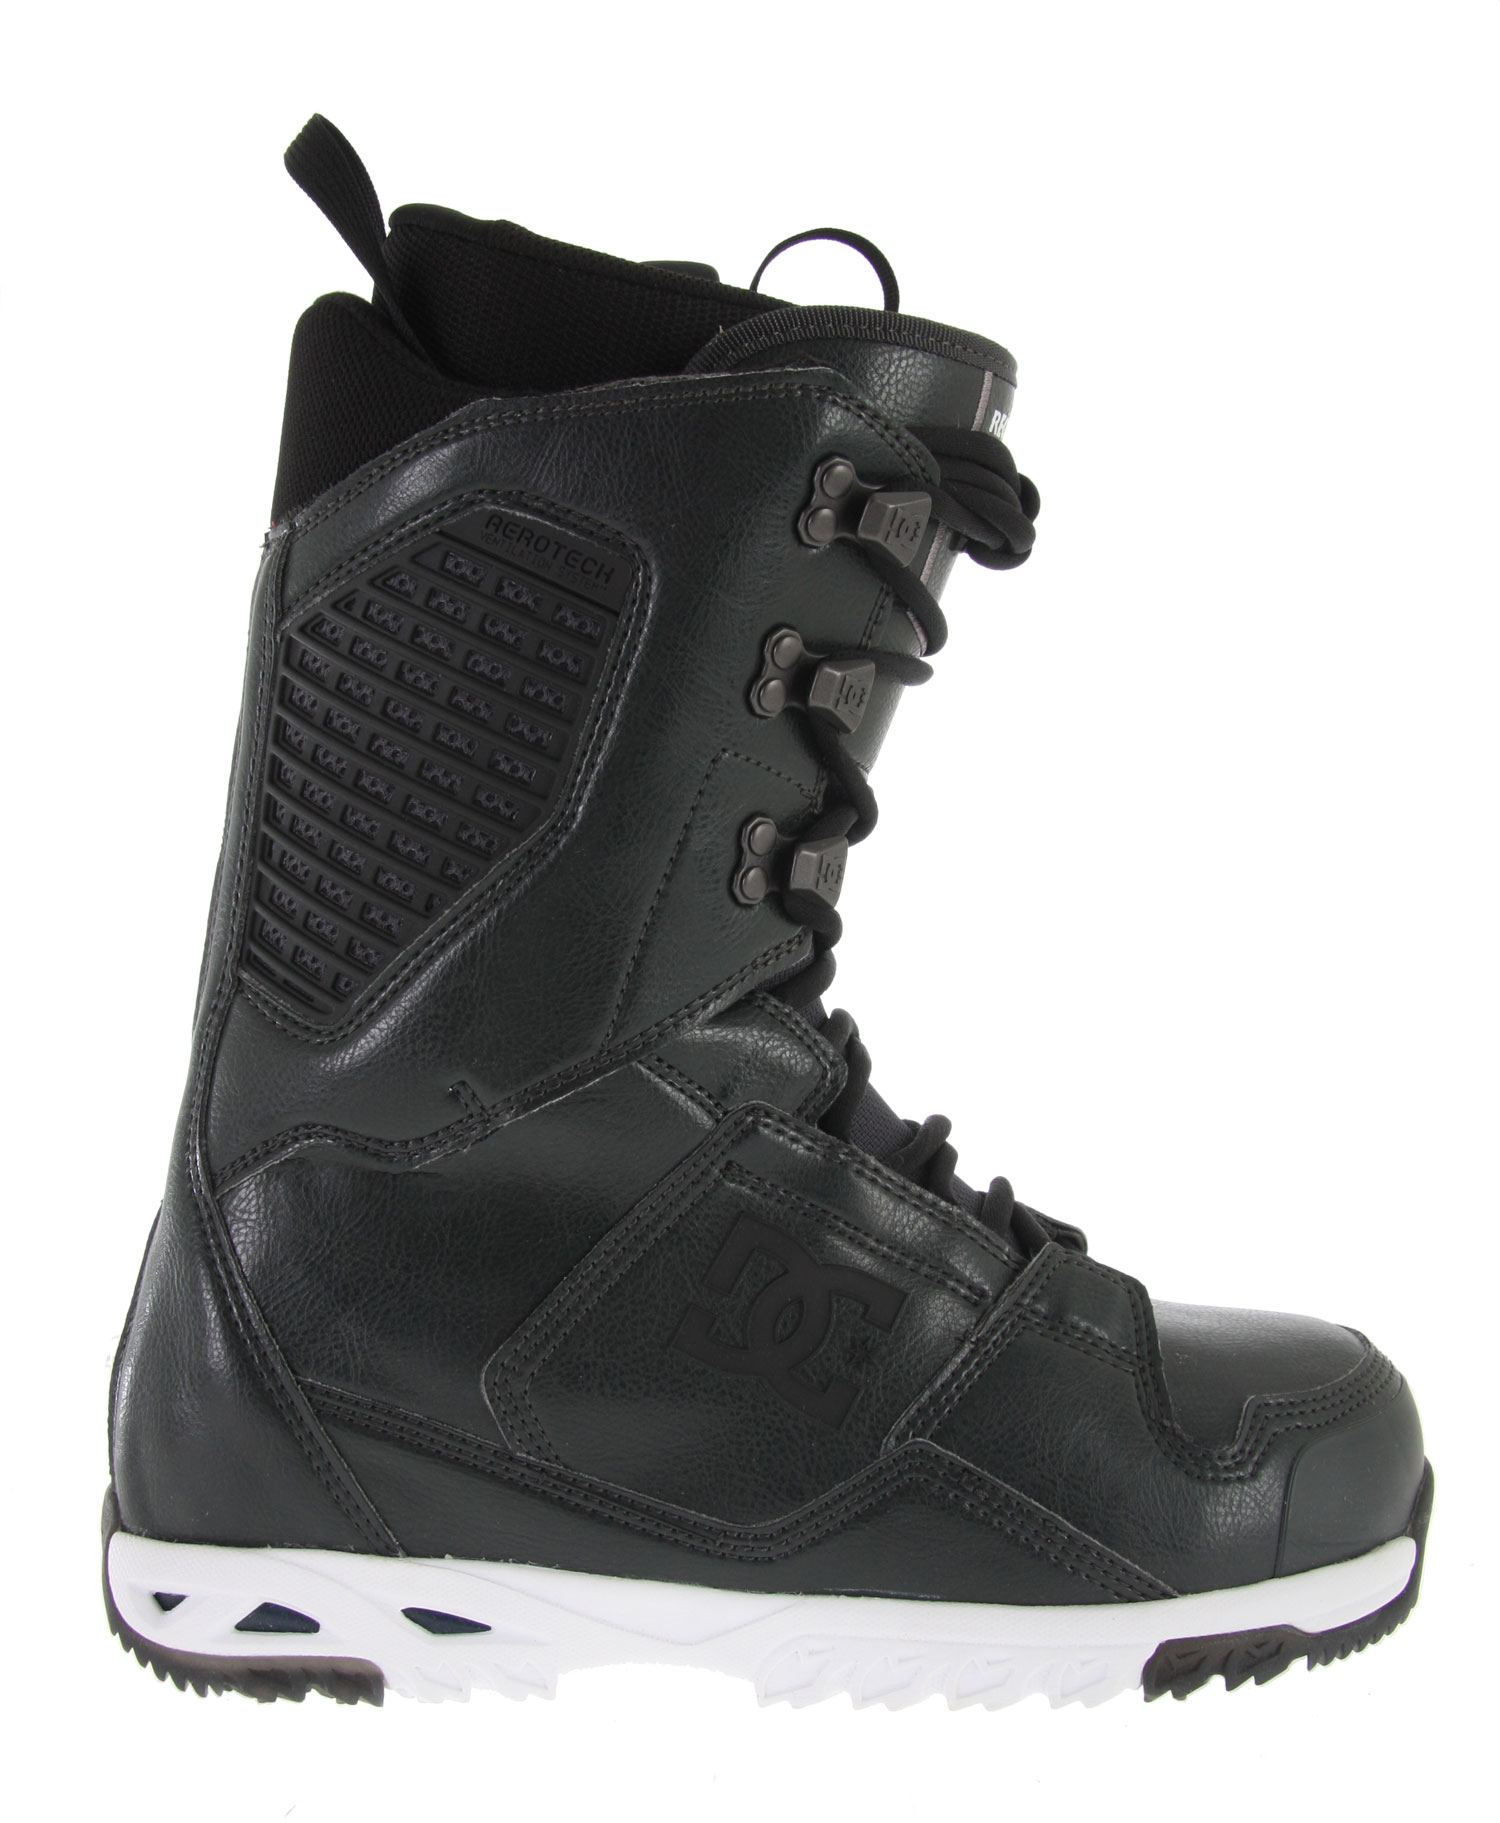 Snowboard Key Features of the DC Ceptor Snowboard Boots: Liner Tech - Alpha Unitlite Outsole With Impact G Aerotech Ventilation System 3D Tongue Articulated Upper Cuff Internal Ankle Harness Molded Backstay Wrap Lock Harware Direct Power Lacing Welded Toe Reinforcement - $149.95